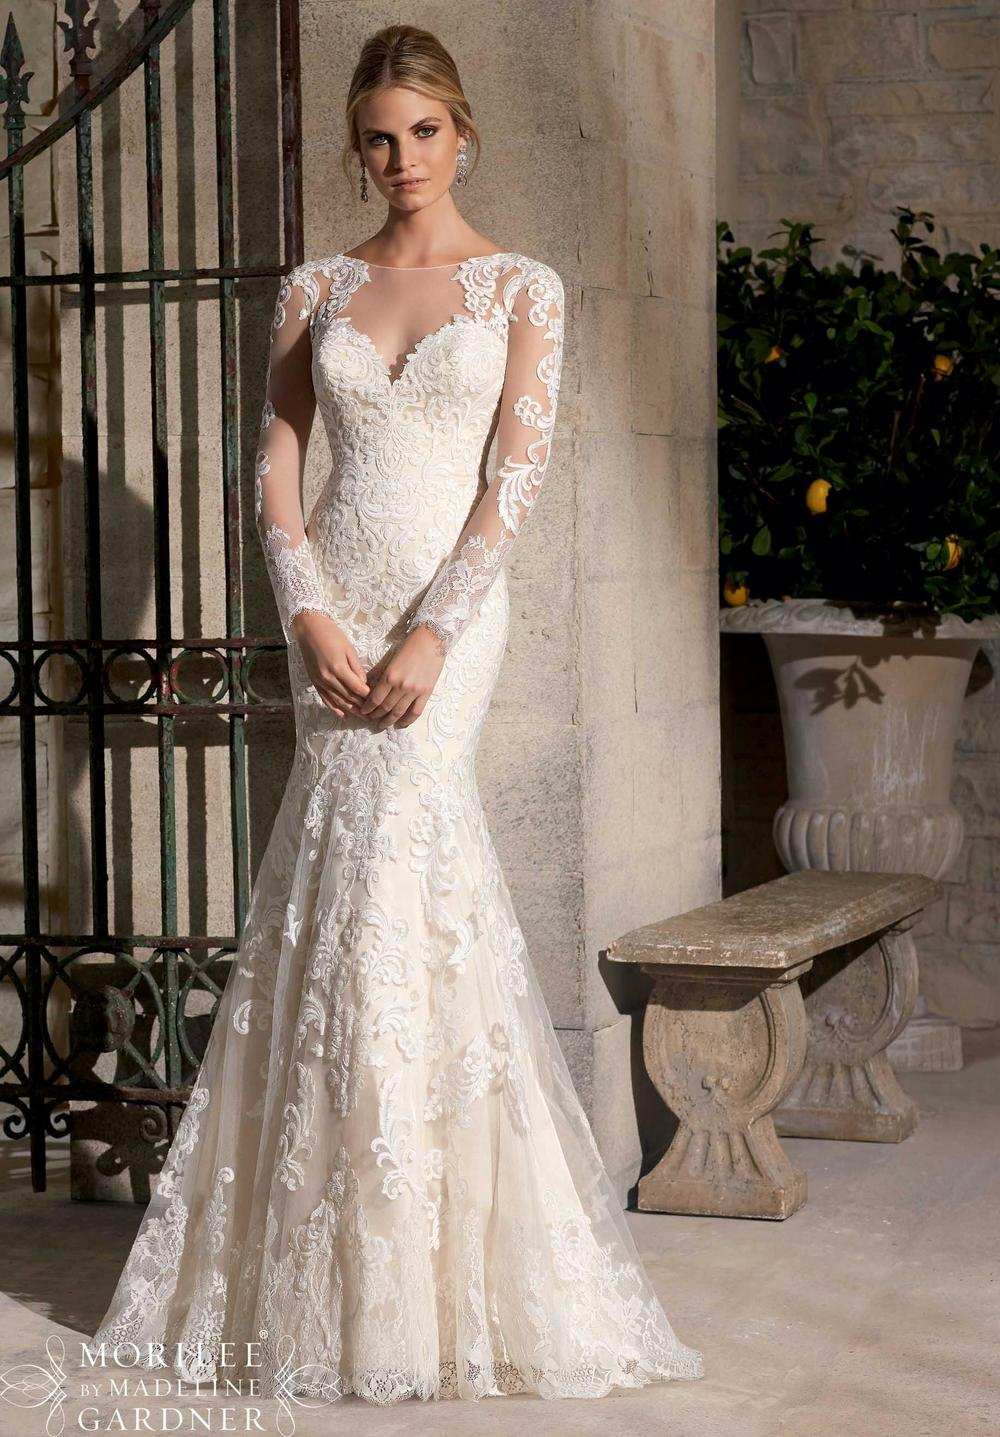 Sheath Wedding Dress By Mori Lee